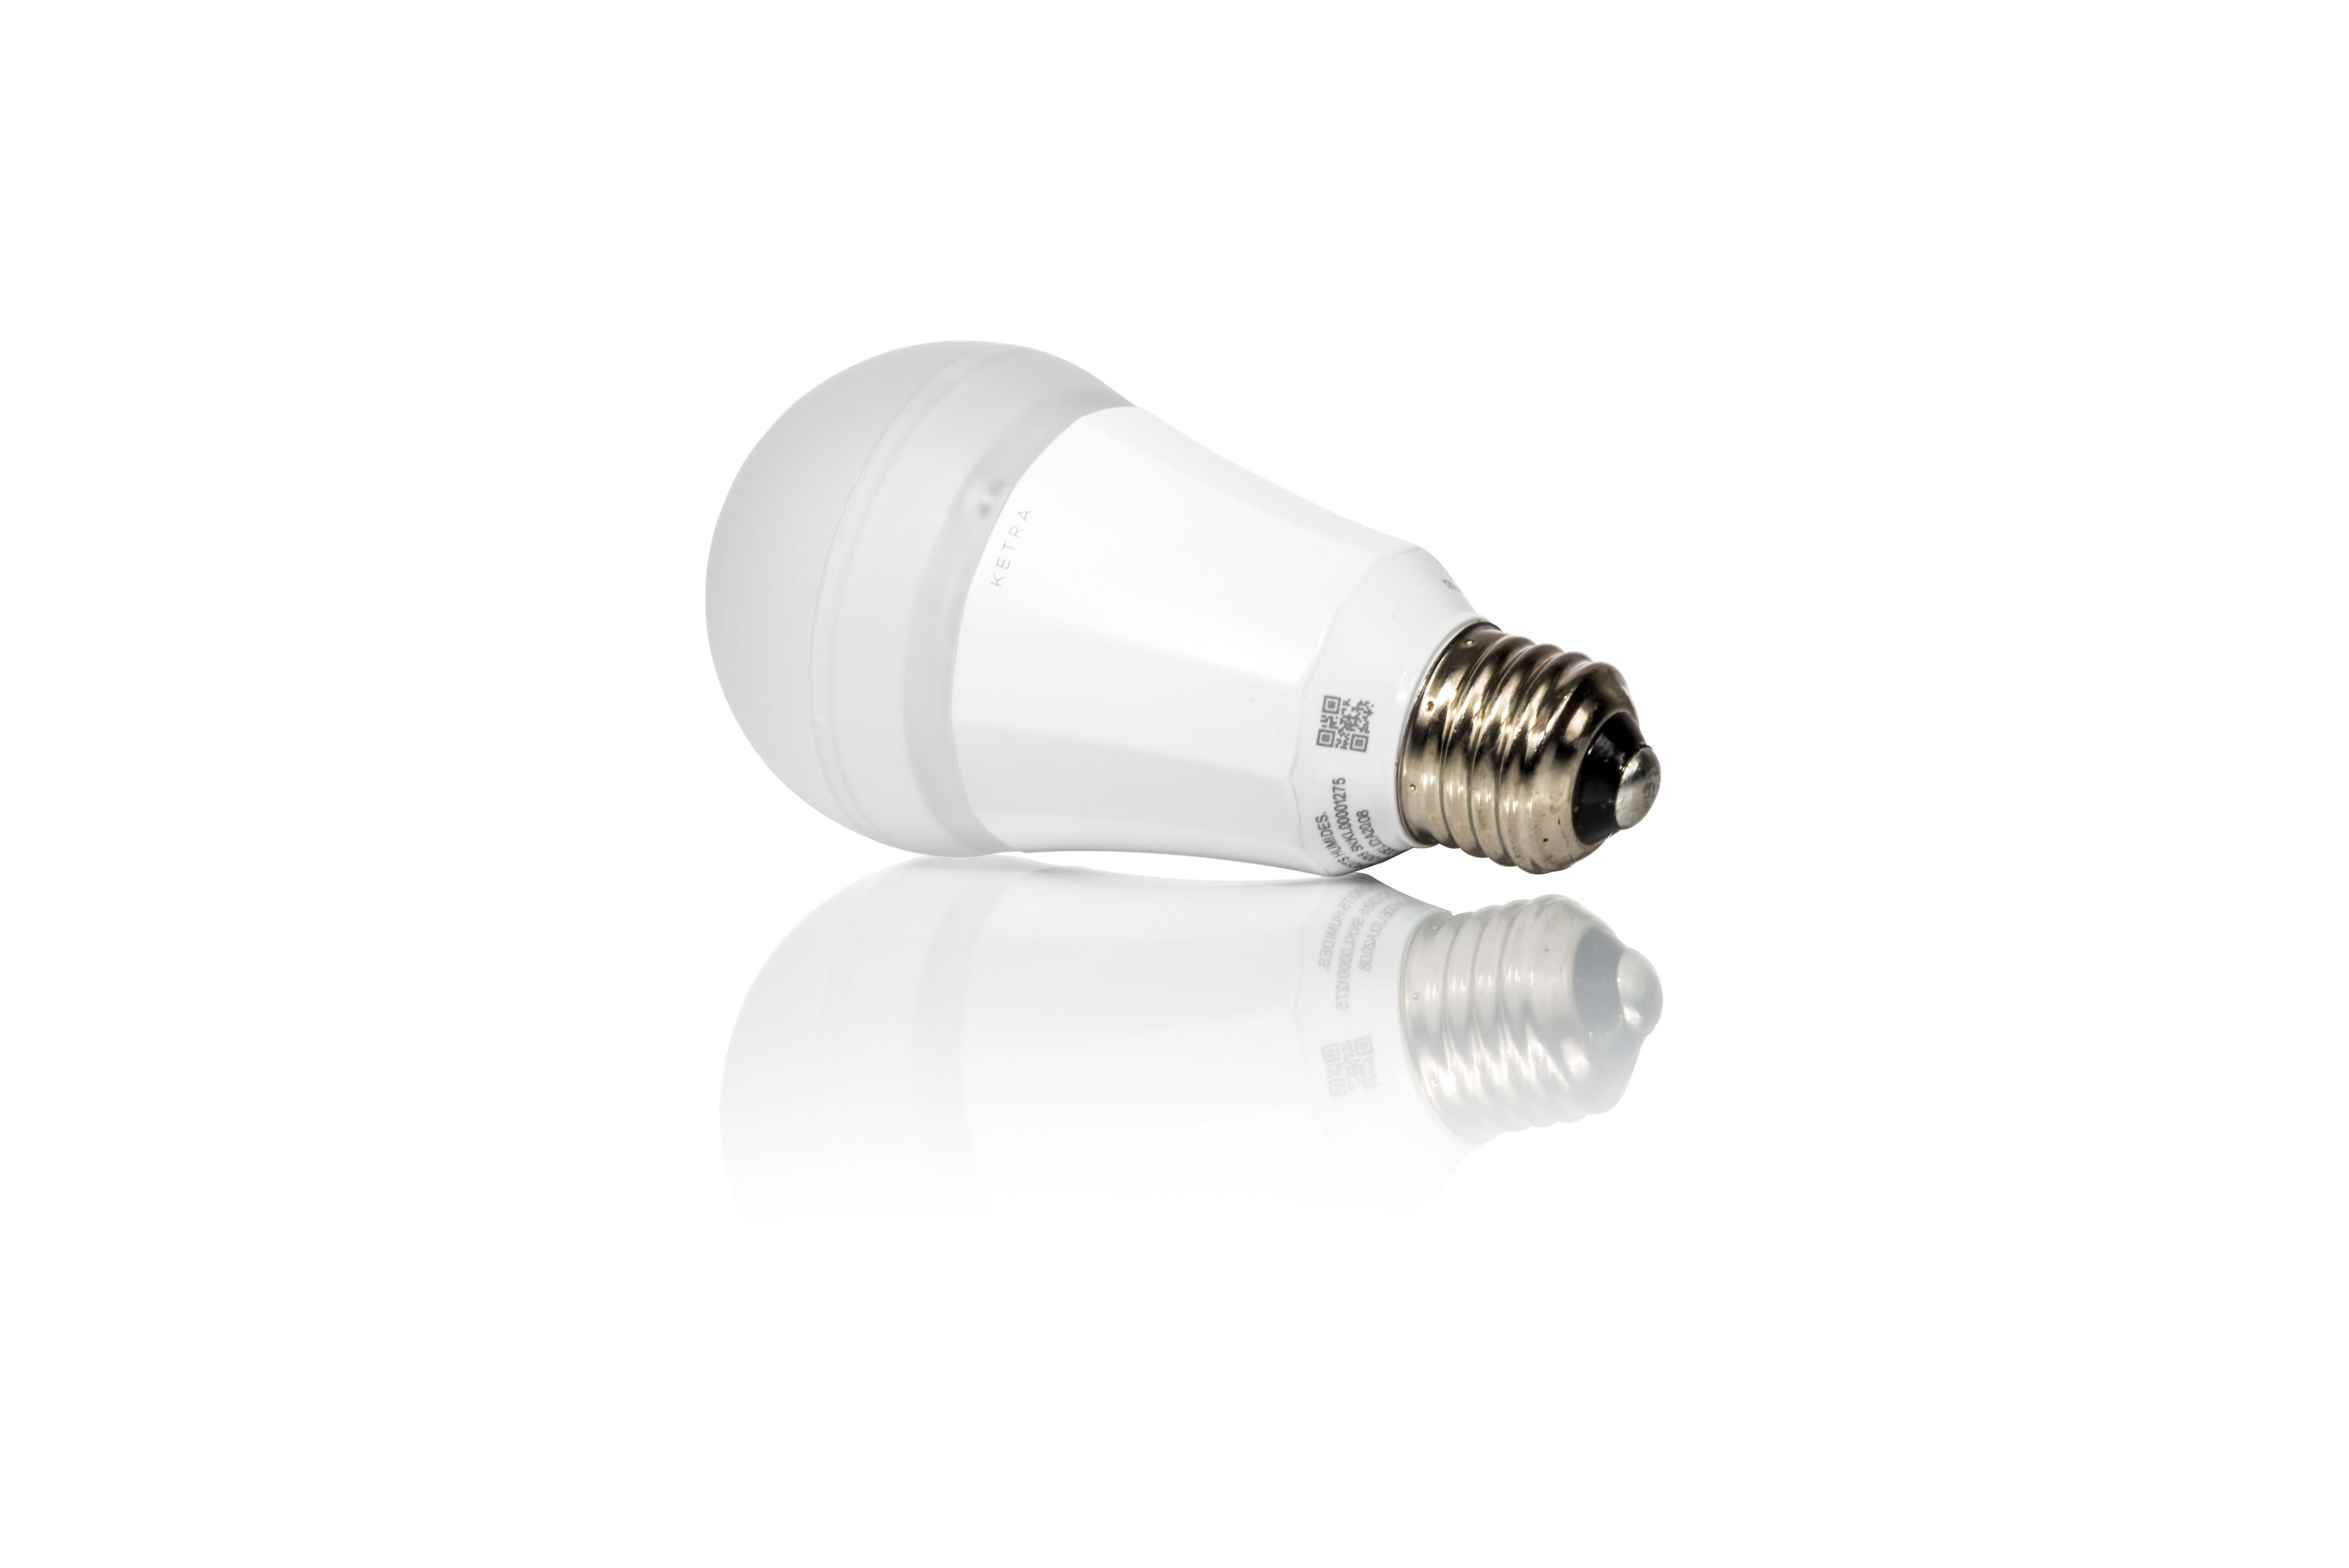 258 A20 Lamps